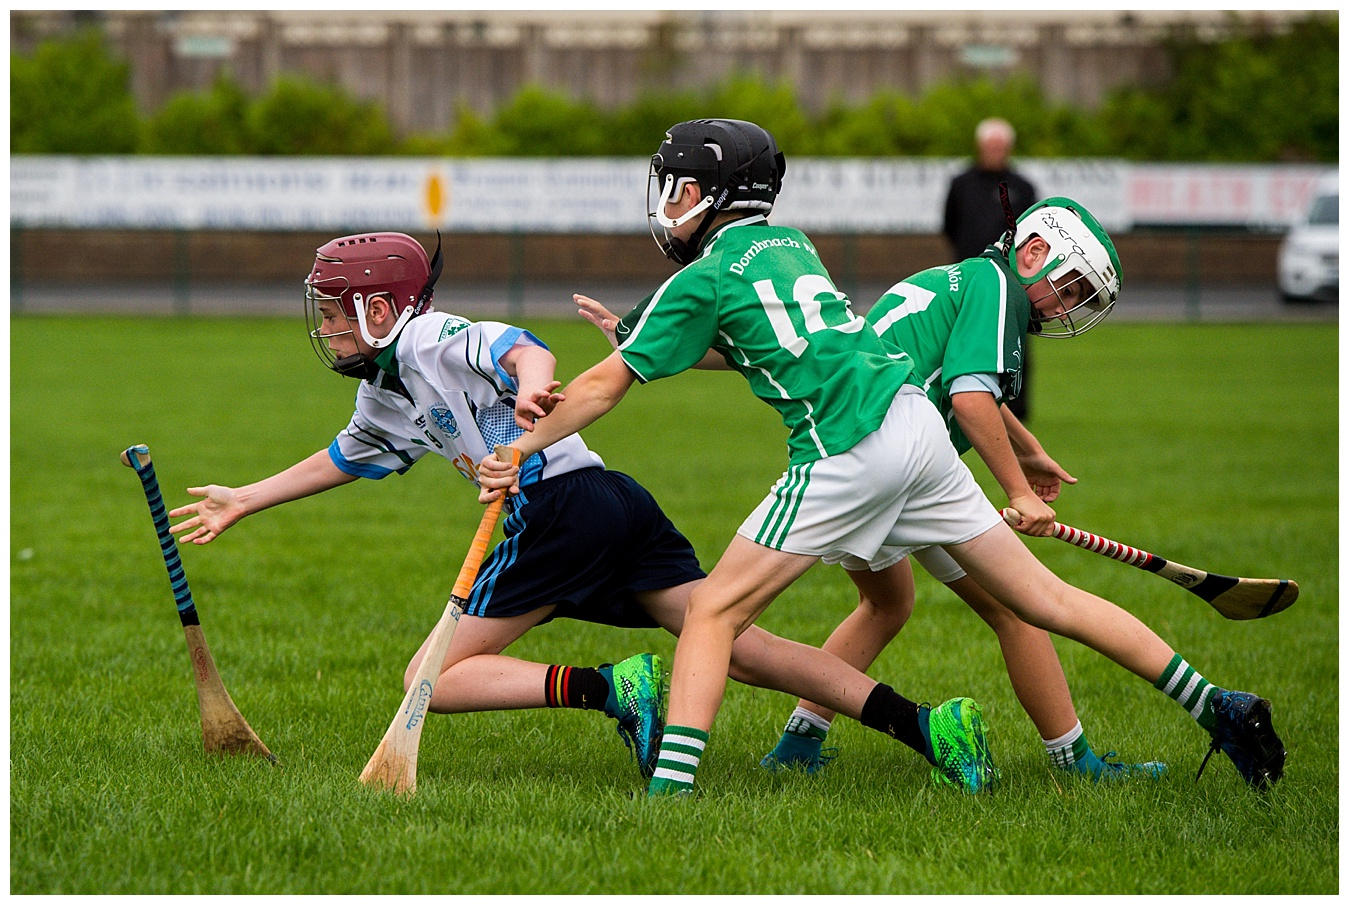 The Saints Vs Donaghmore Ashbourne (Under 12 Summer League Hurling Final)